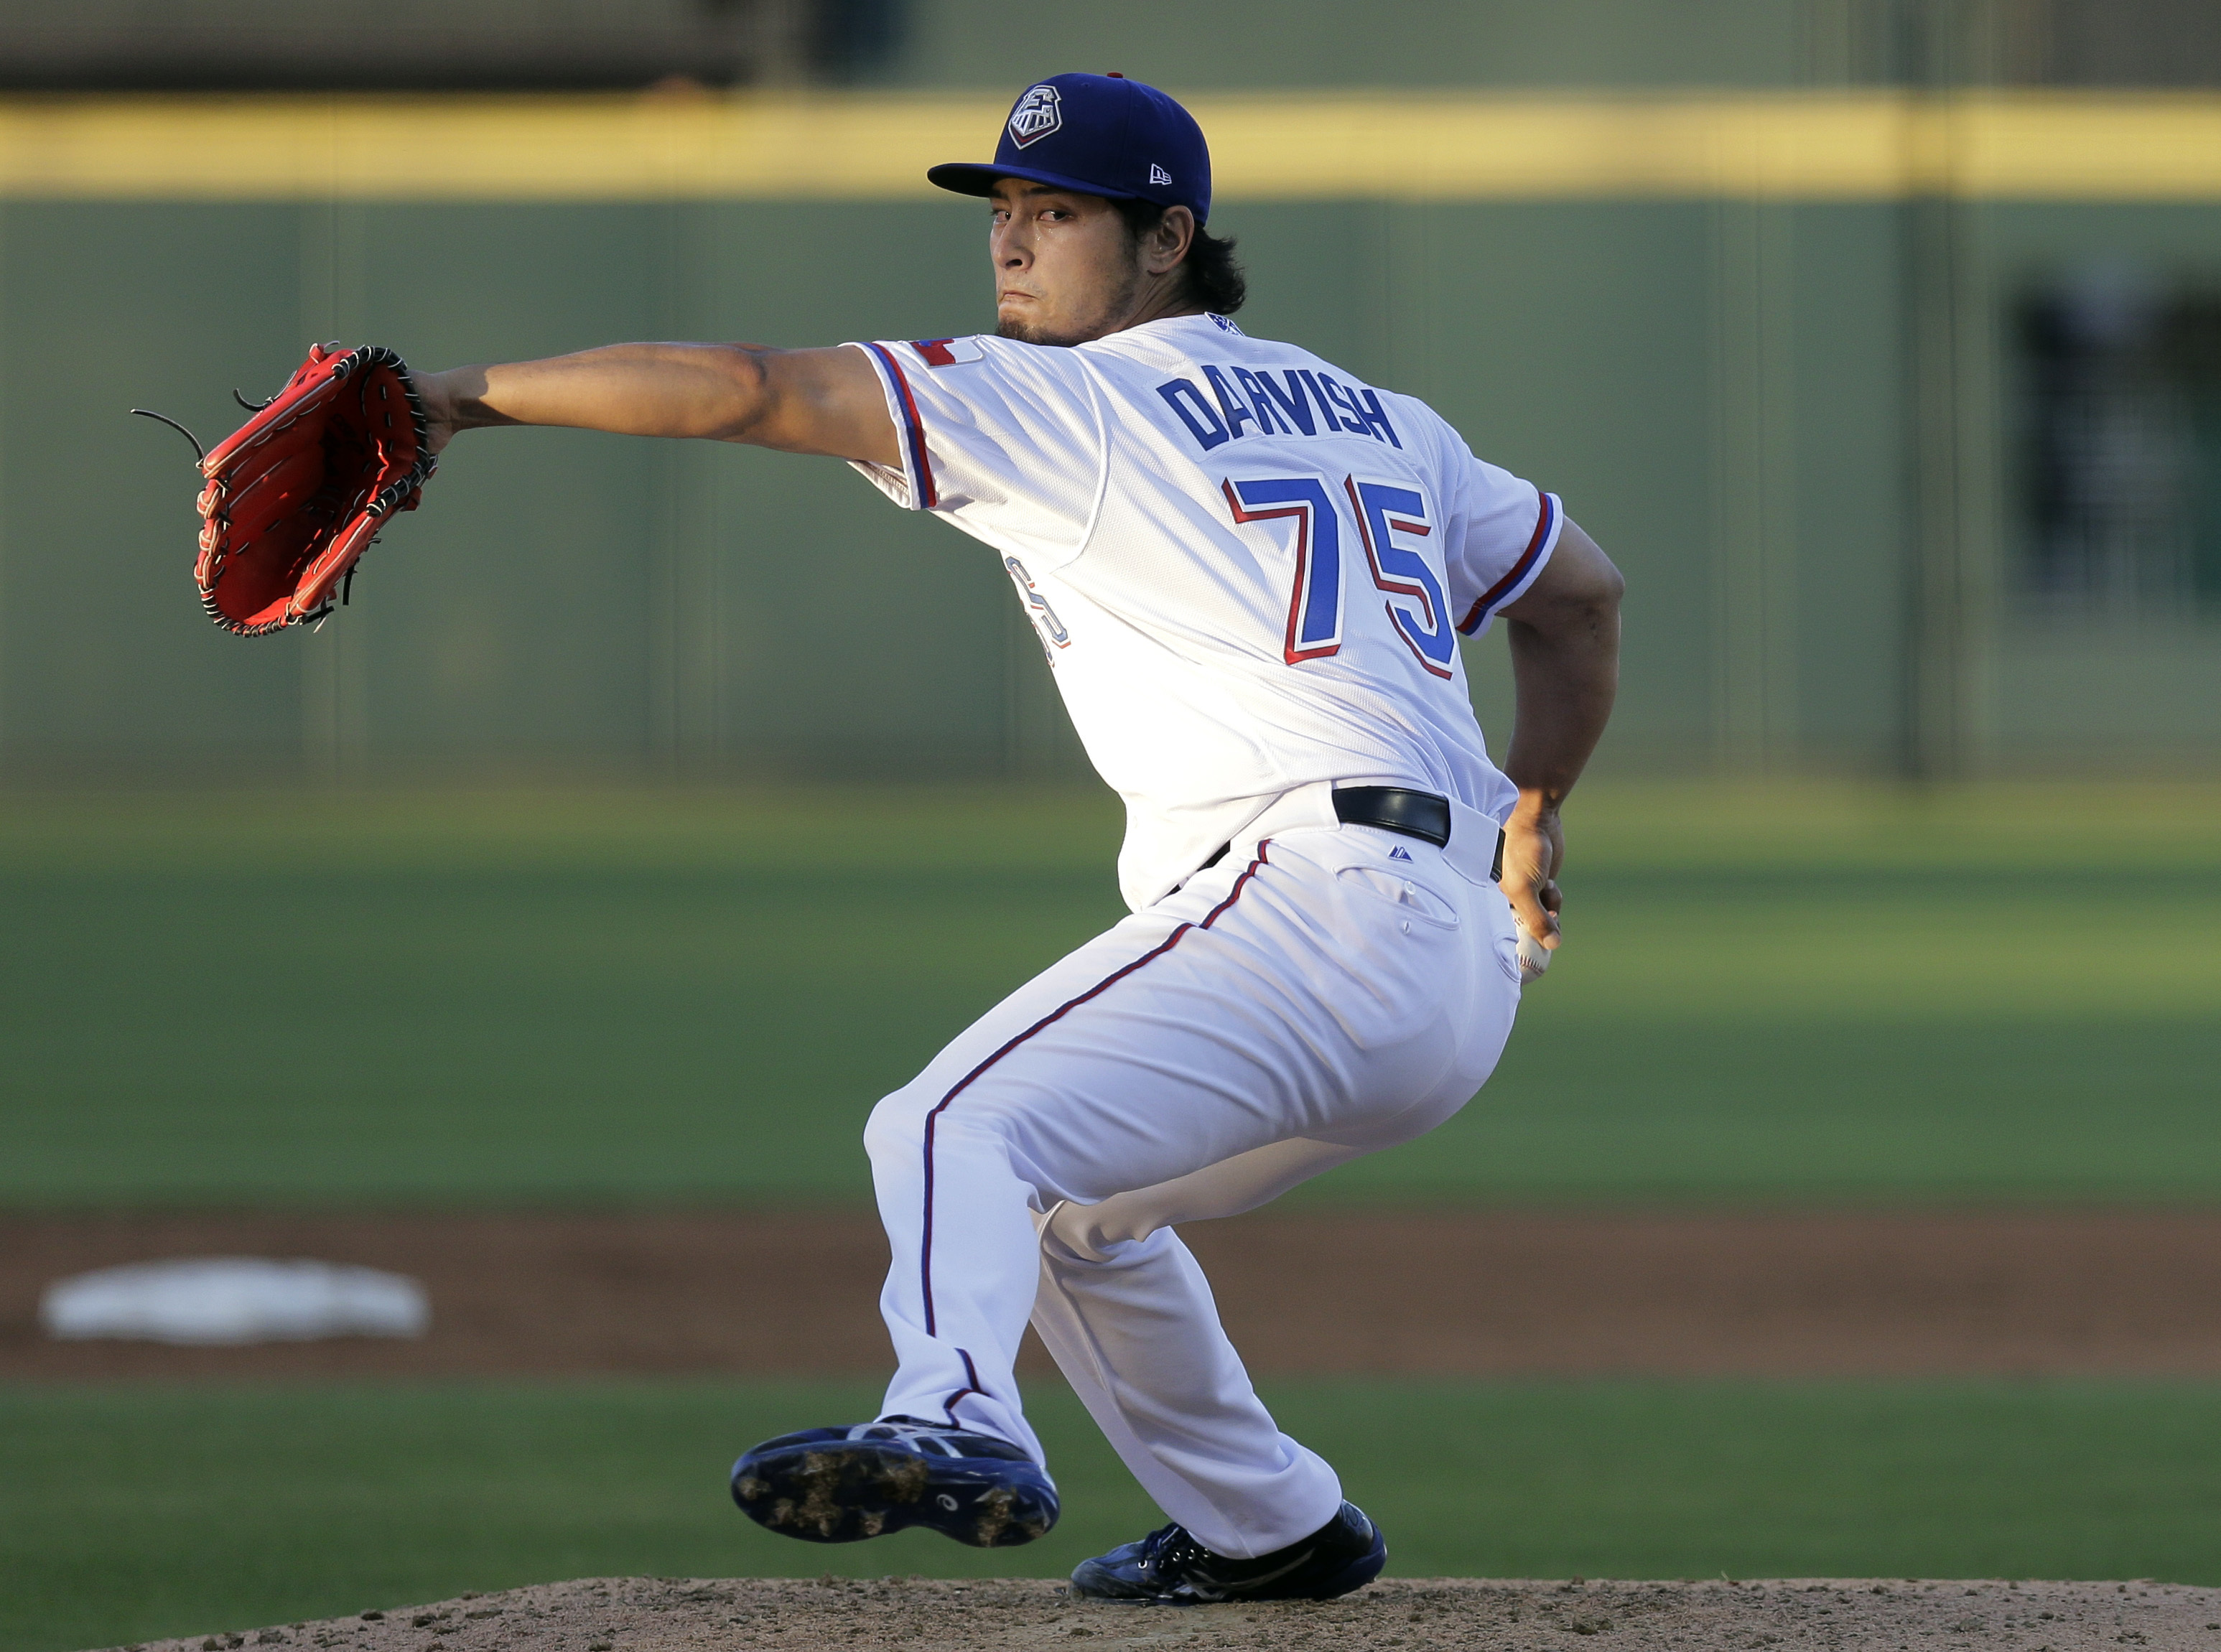 FILE- In this May 6, 2016, file photo, Texas Rangers pitcher Yu Darvish delivers during a rehab start for Triple-A Round Rock Express against the New Orleans Zephyrs during a baseball game, Friday, May 6, 2016, in Austin, Texas. Darvish missed the end of